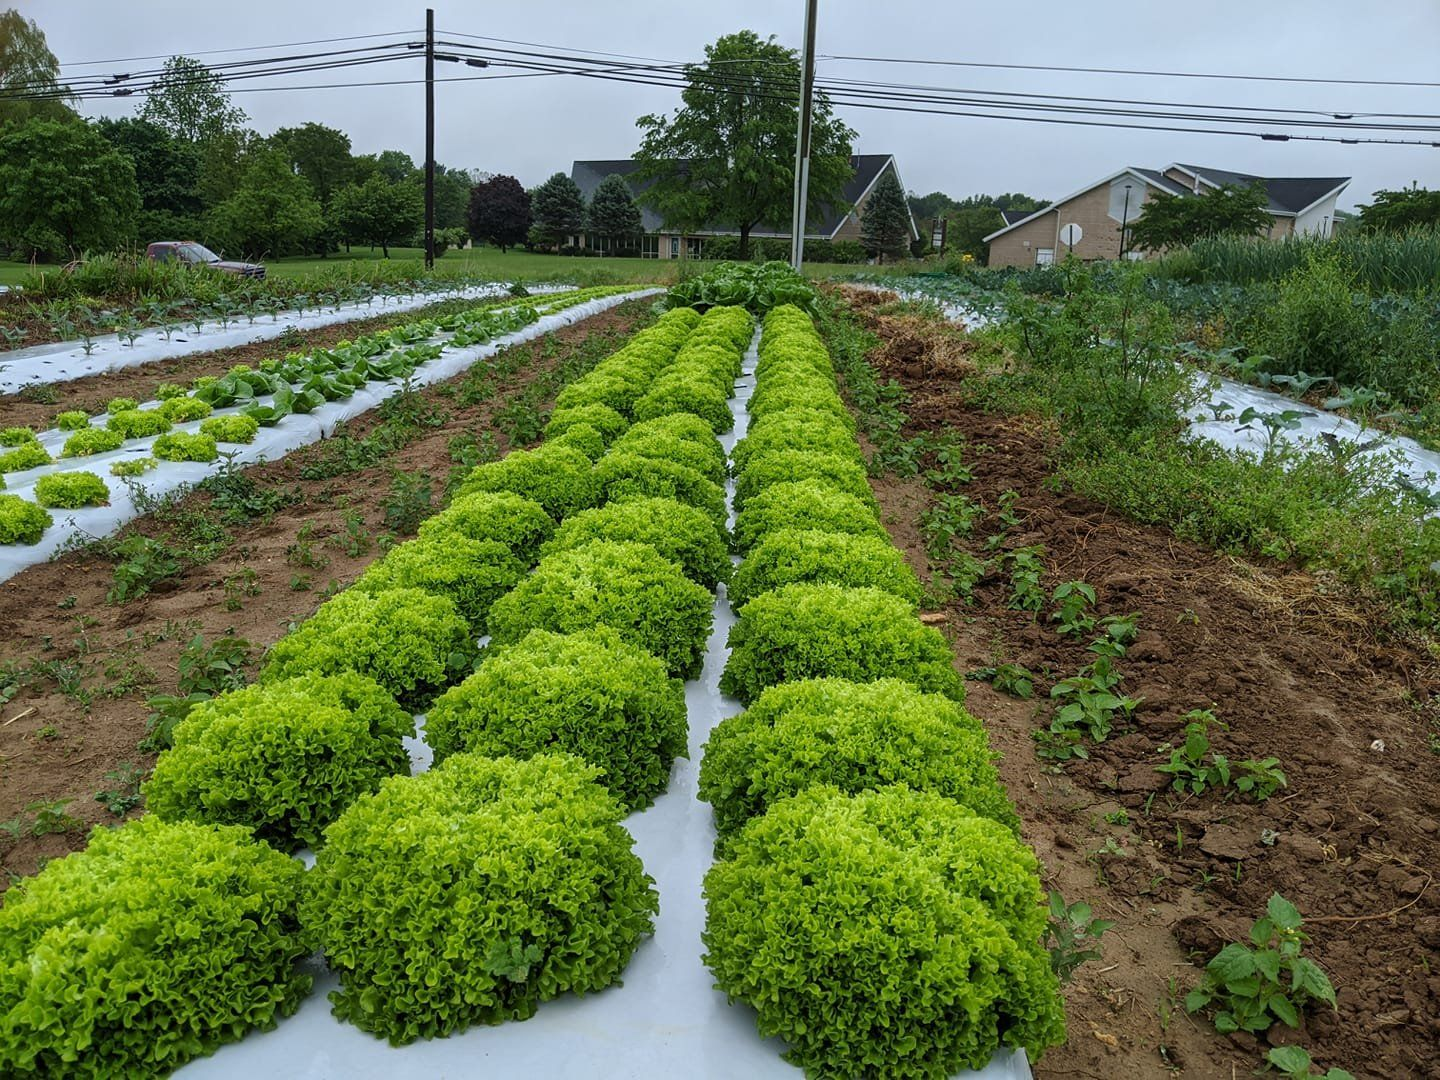 Next Happening: Farm Happenings for May 27, 2020